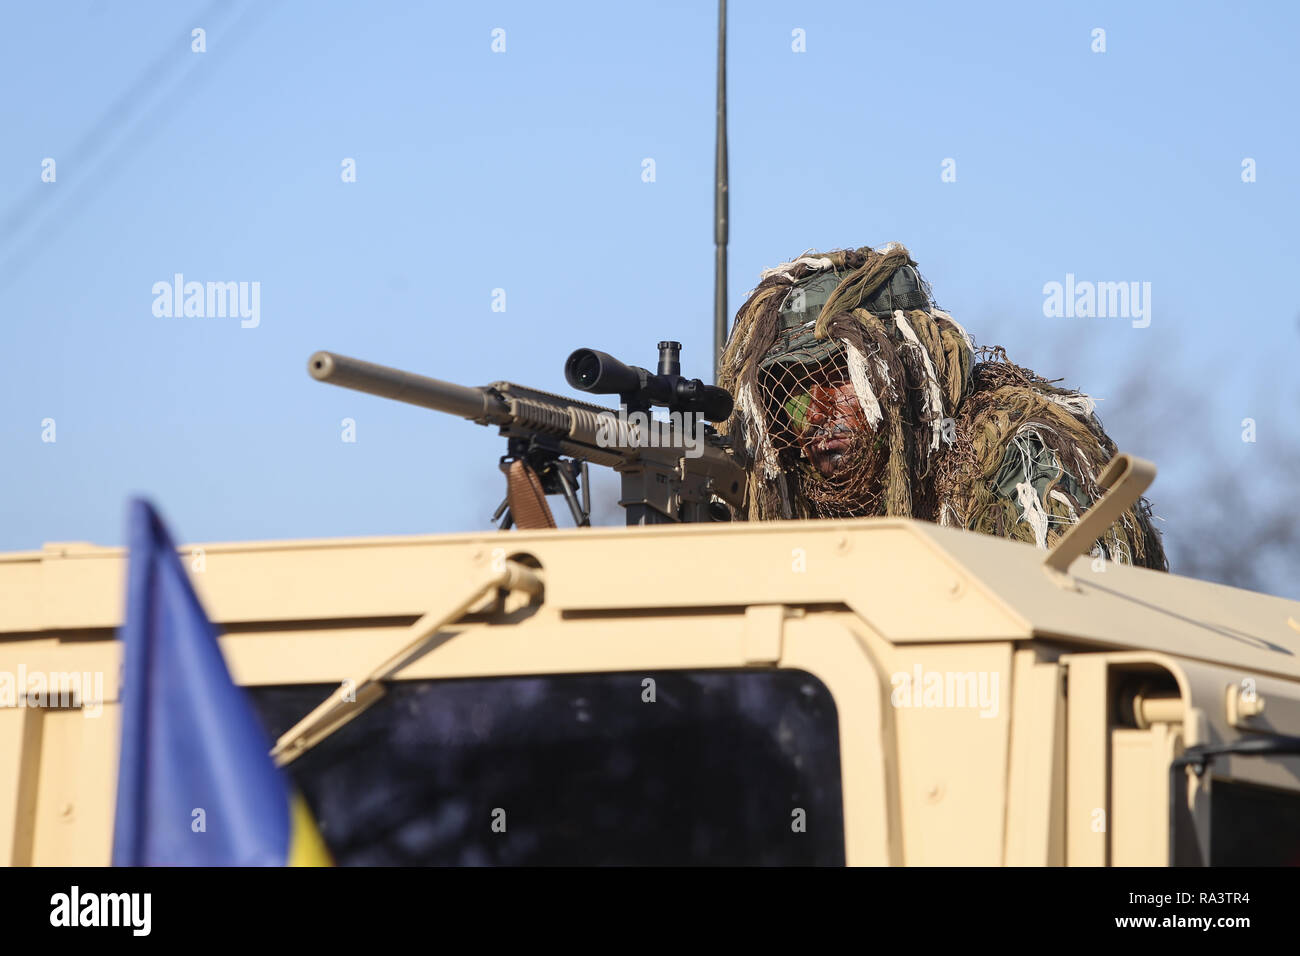 Bucharest, Romania - December 1, 2018: Romanian army sniper, armed with the US M110 semi-automatic sniper rifle and on top of a Humvee armored vehicle - Stock Image